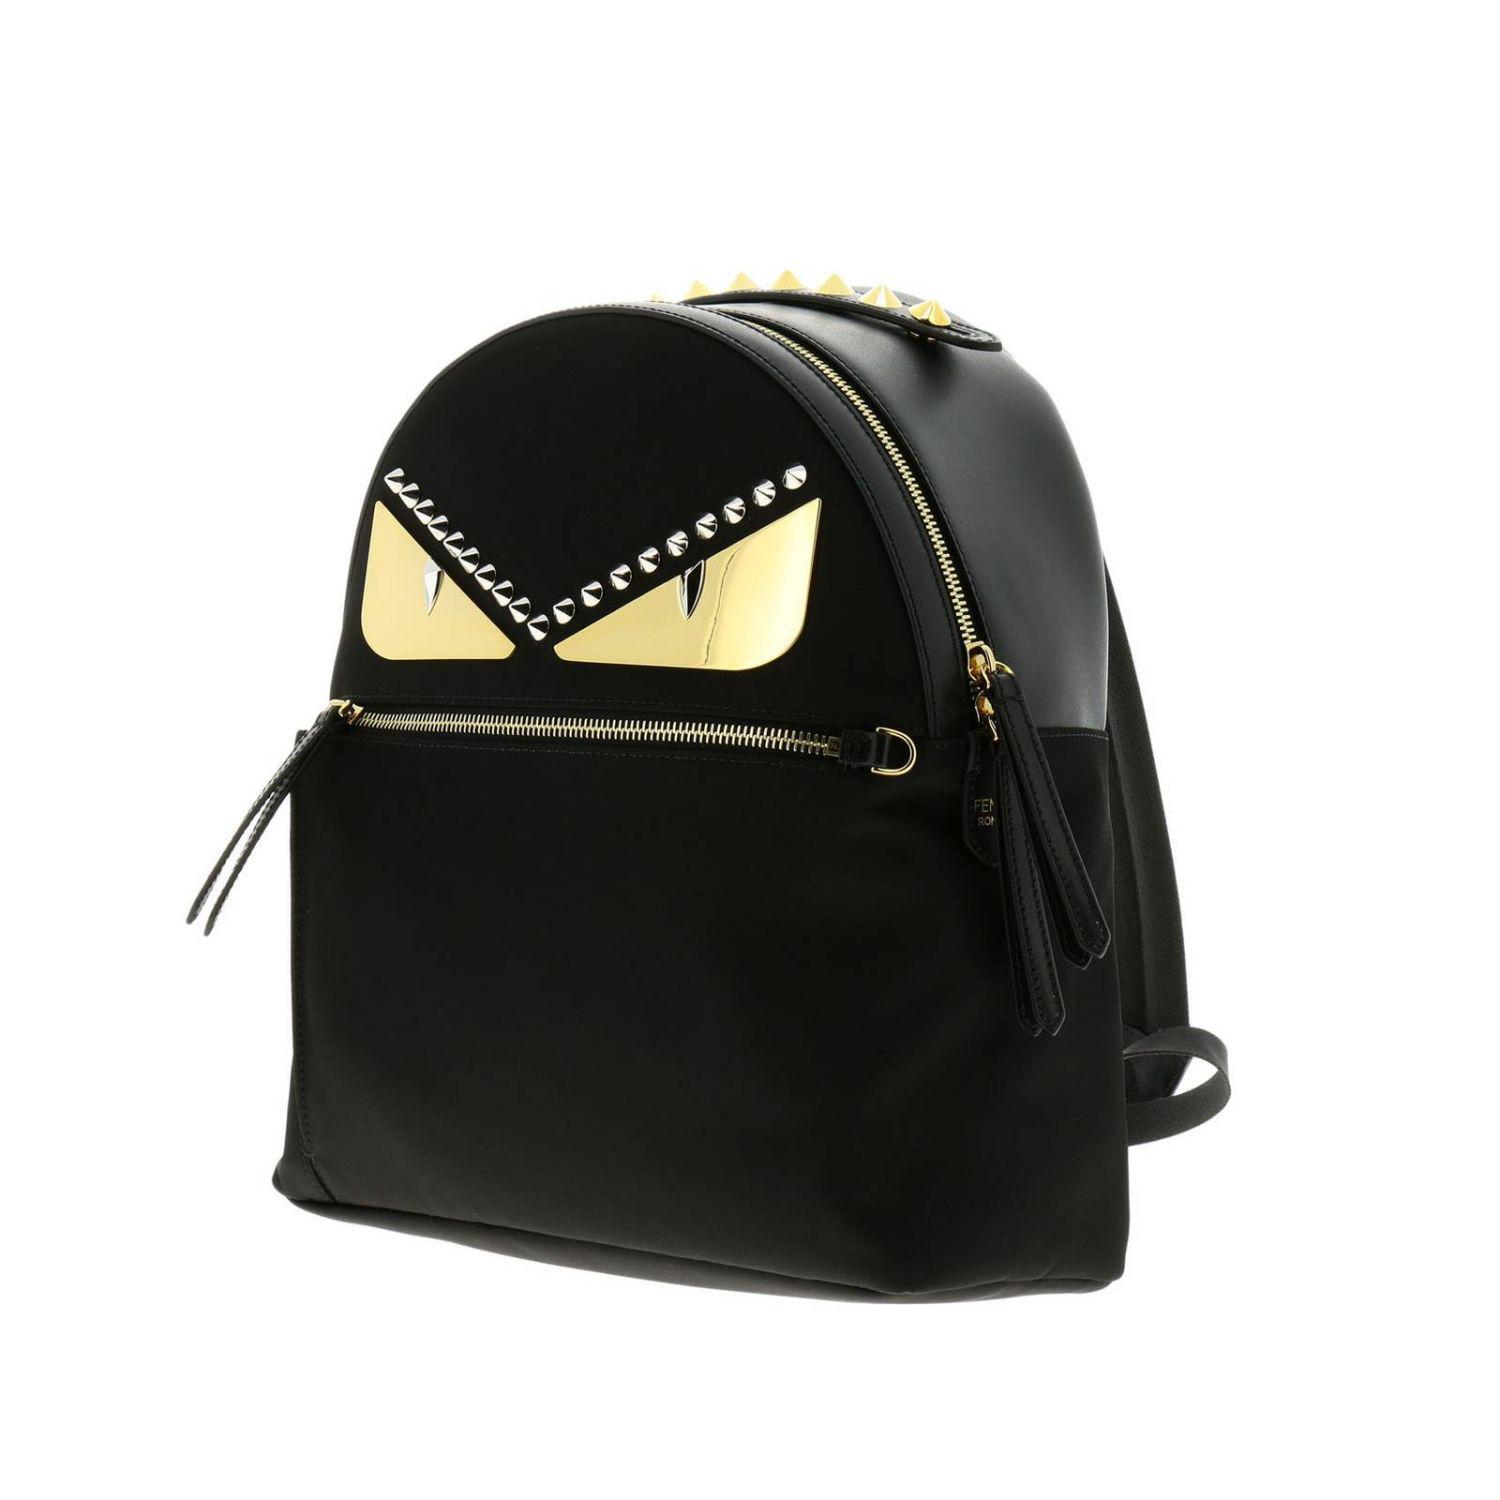 4de850802be2 Fendi - Black Monster Eyes Nylon And Leather Backpack With Bag Bugs Eyes  Metal Patch -. View fullscreen